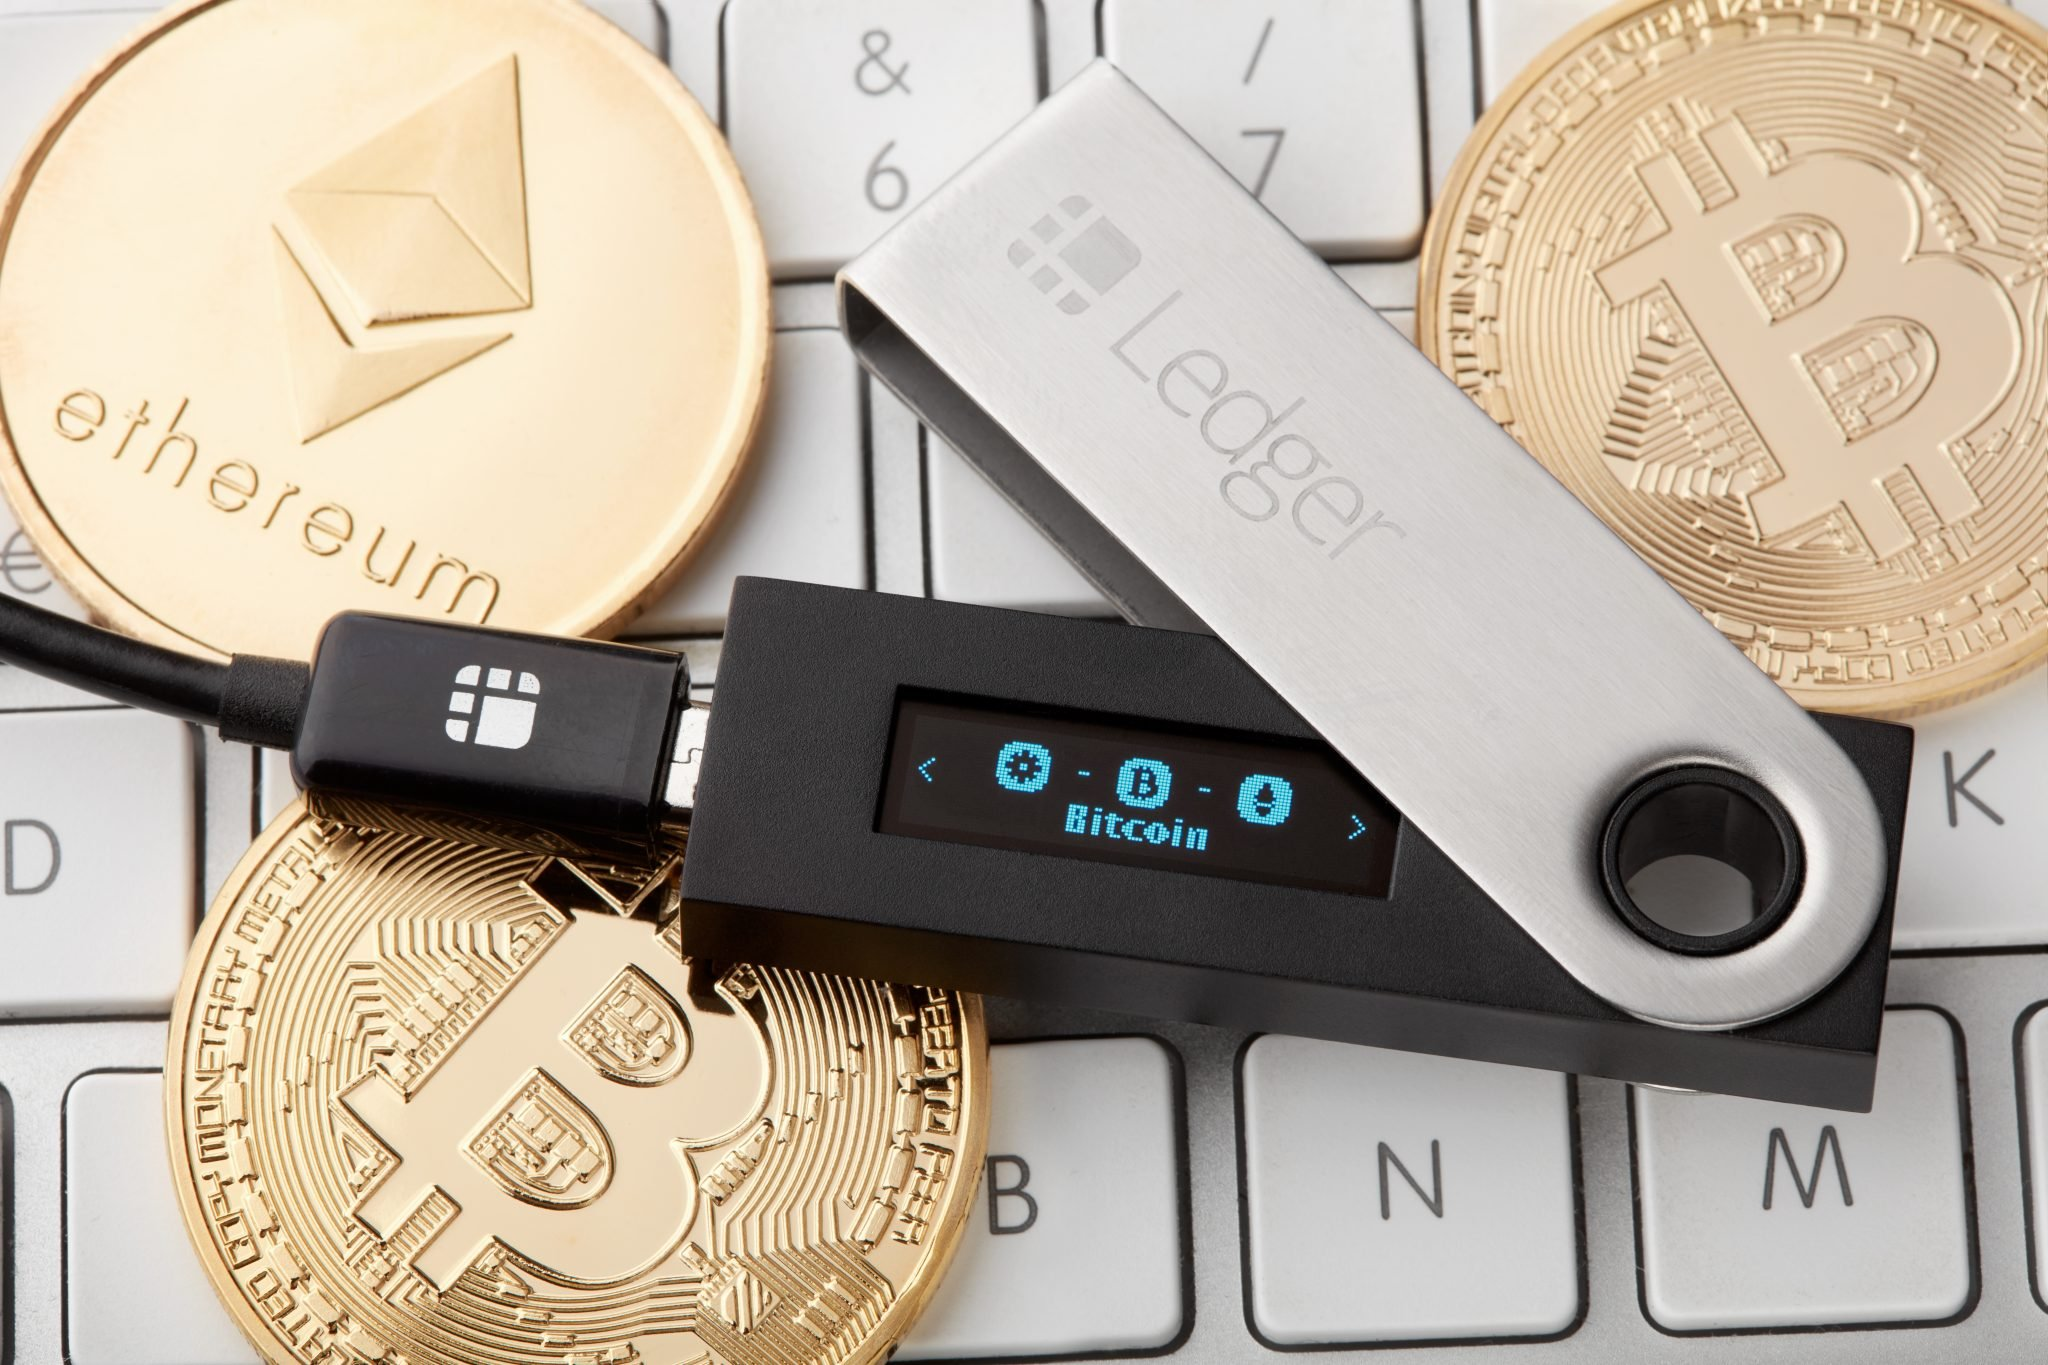 Ledger hardware wallet for cryptocurrency with golden bitcoin and ethereum